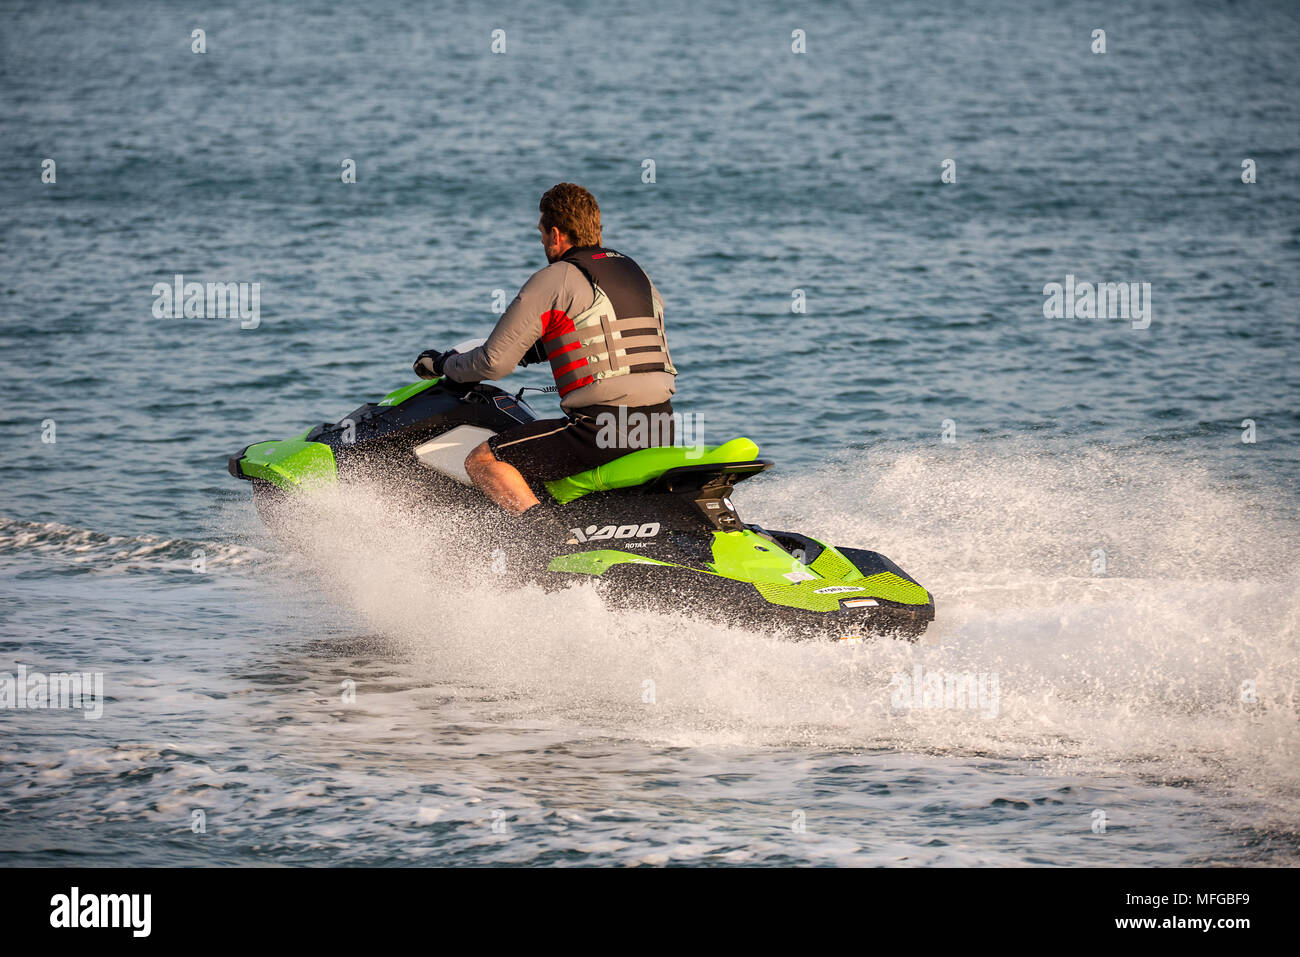 Middle aged man wearing a life vest rides a personal water craft Jet Ski along a calm sea. - Stock Image